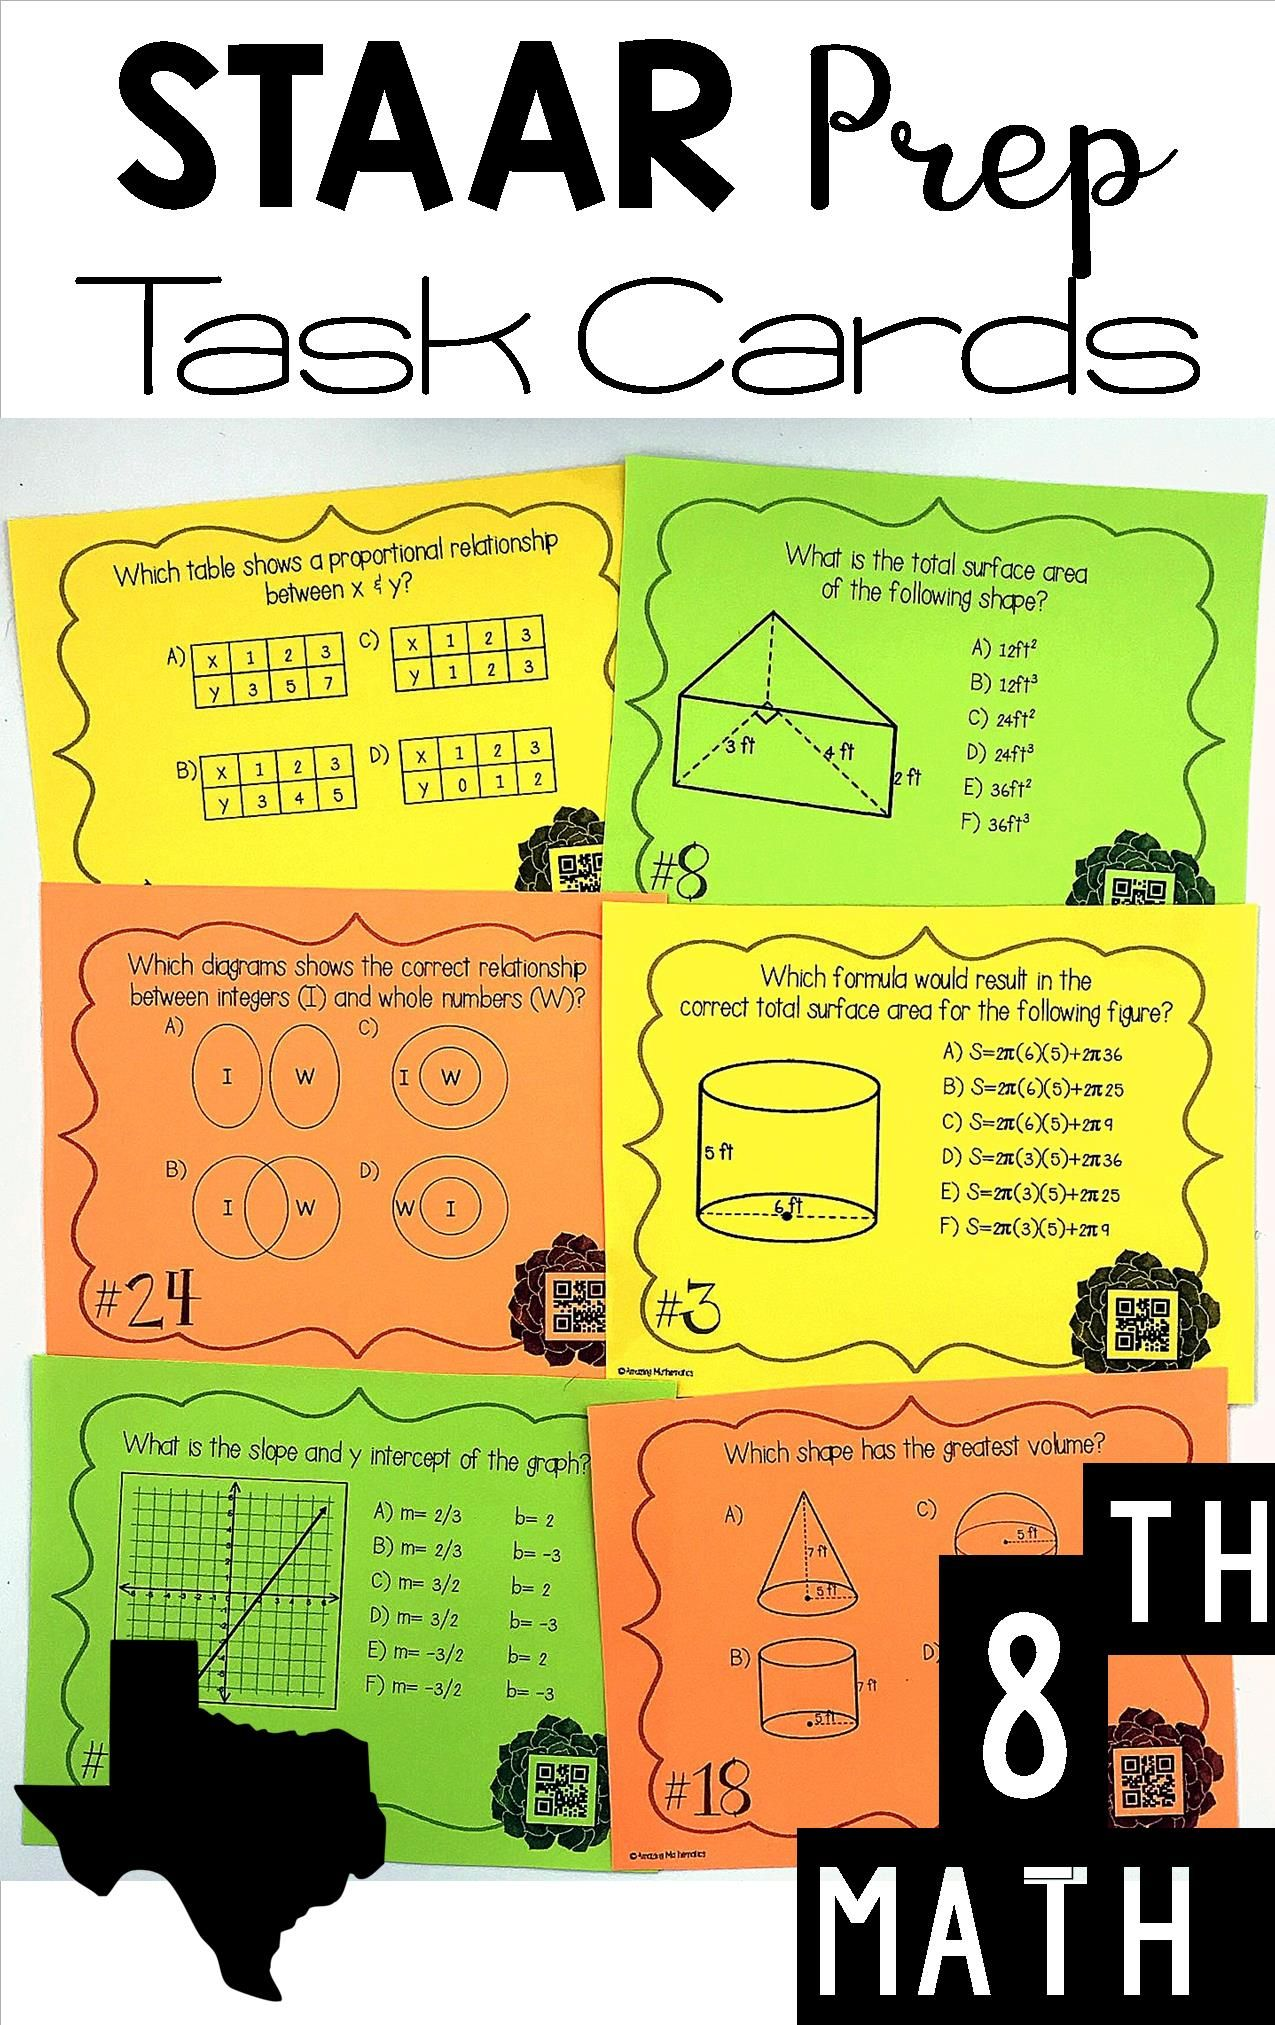 Top Rated 1 Selling Staar Prep Task Cards For 8th Grade Math My Students Were So Engaged Last Year When I Used T Staar Math Staar Review Math 8th Grade Math [ 2025 x 1275 Pixel ]